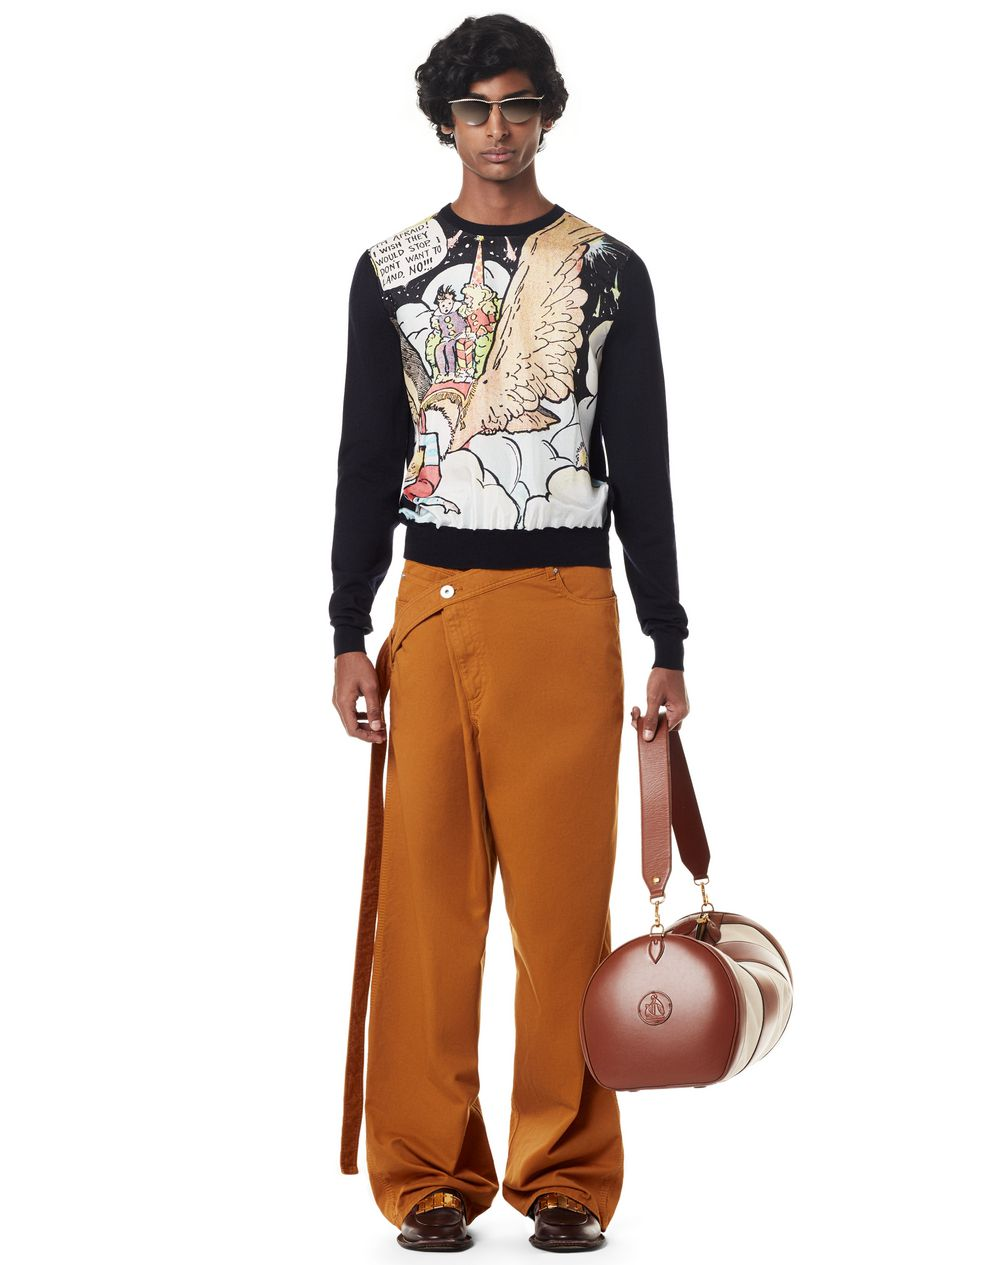 PRINTED WOOL AND SILK SWEATER - Lanvin